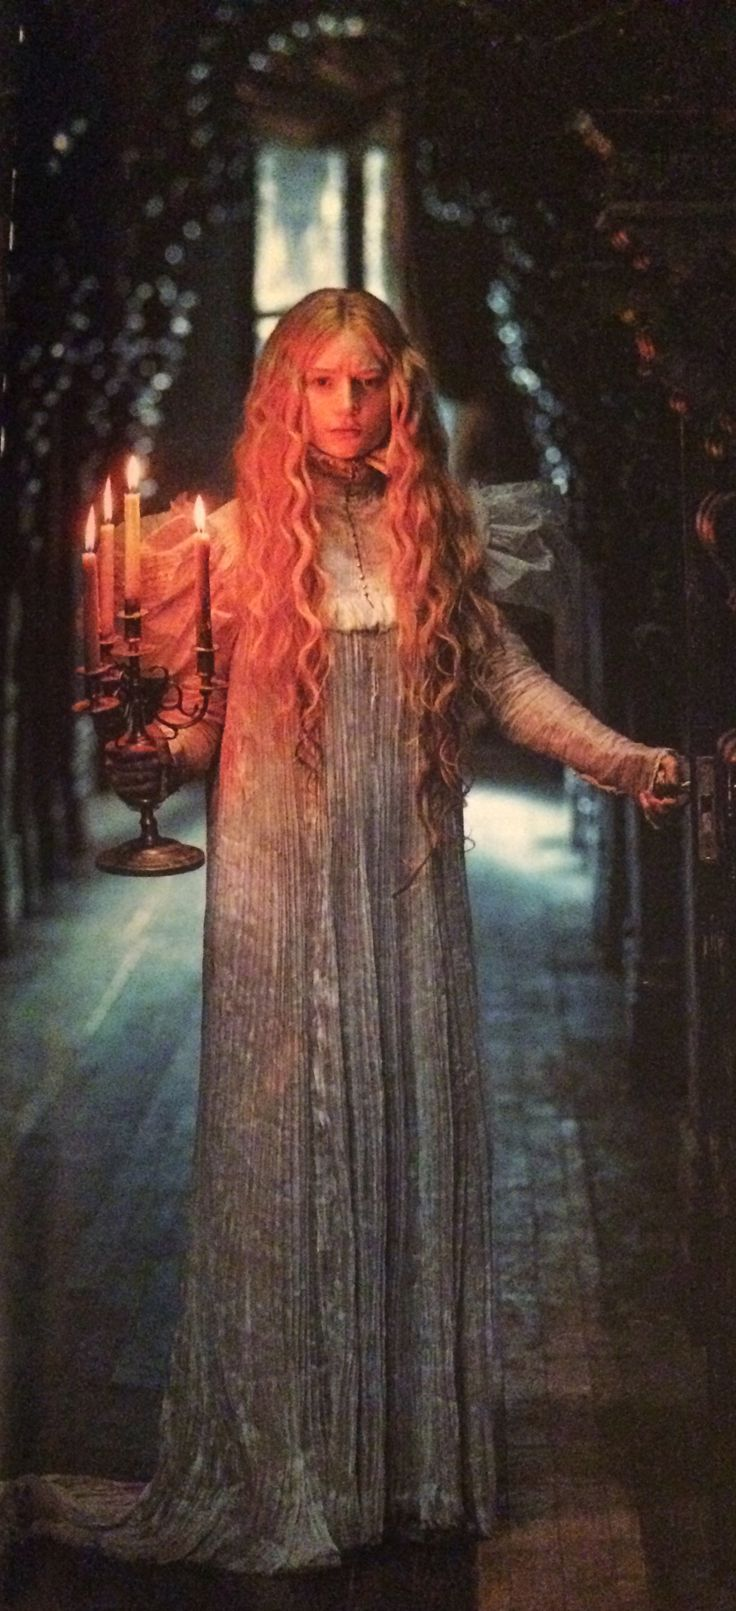 Mia Wasikowska as Edith Cushing in 'Crimson Peak' (2015). Costume Designer: Kate Hawley